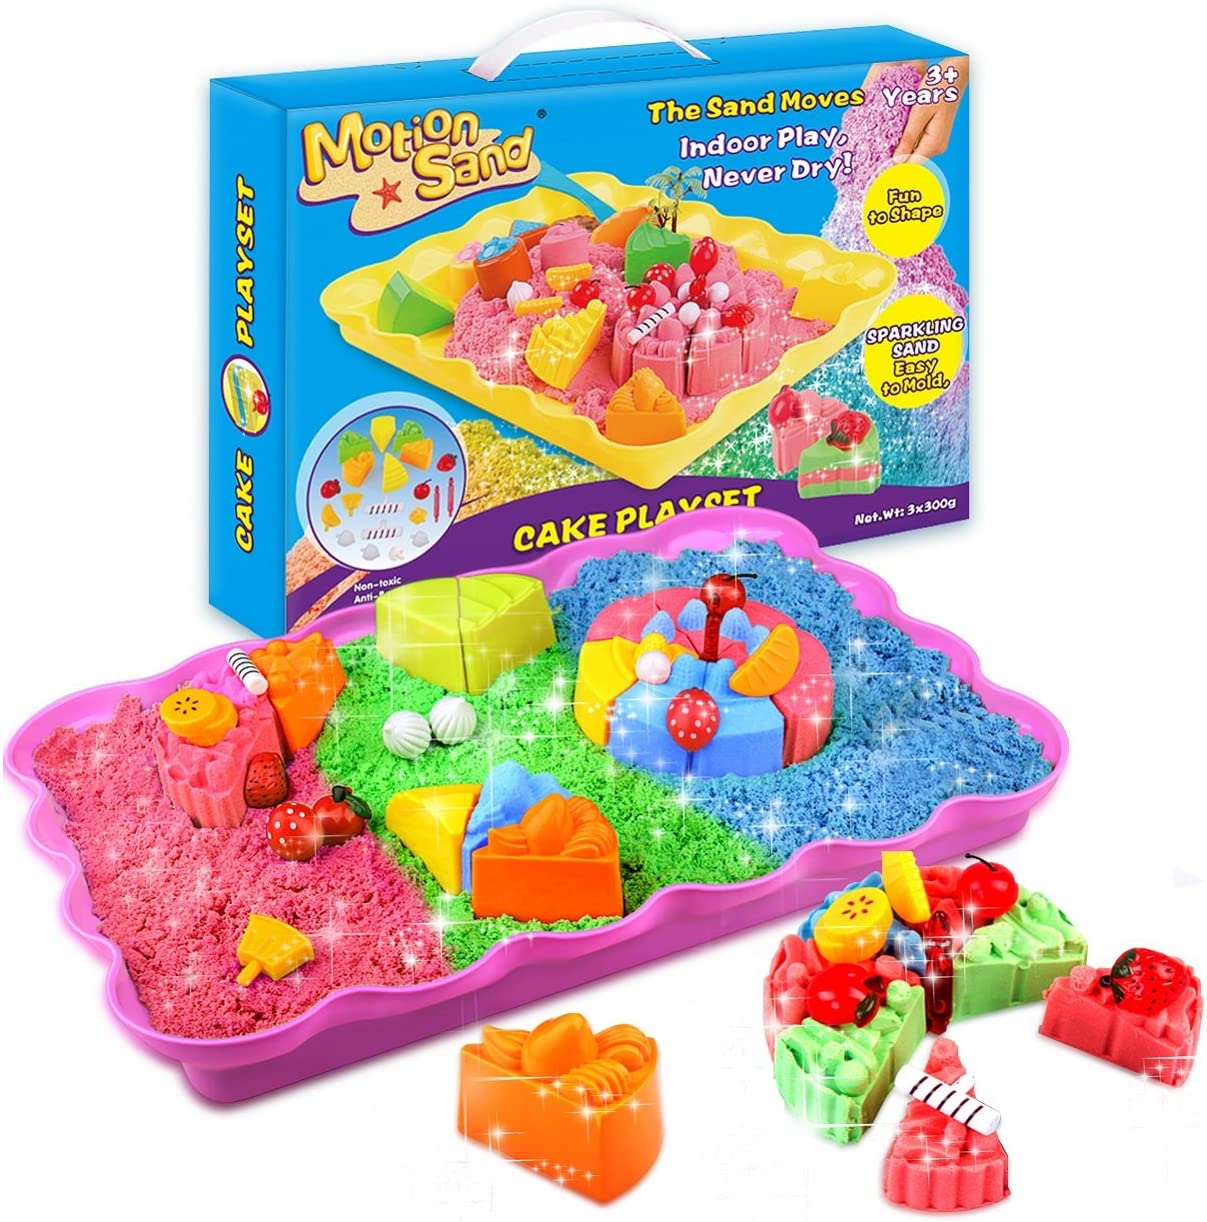 MOTION SAND 2LBS Quantity limited Shimmering Play Sand Topics on TV Kids 3 Color for Include